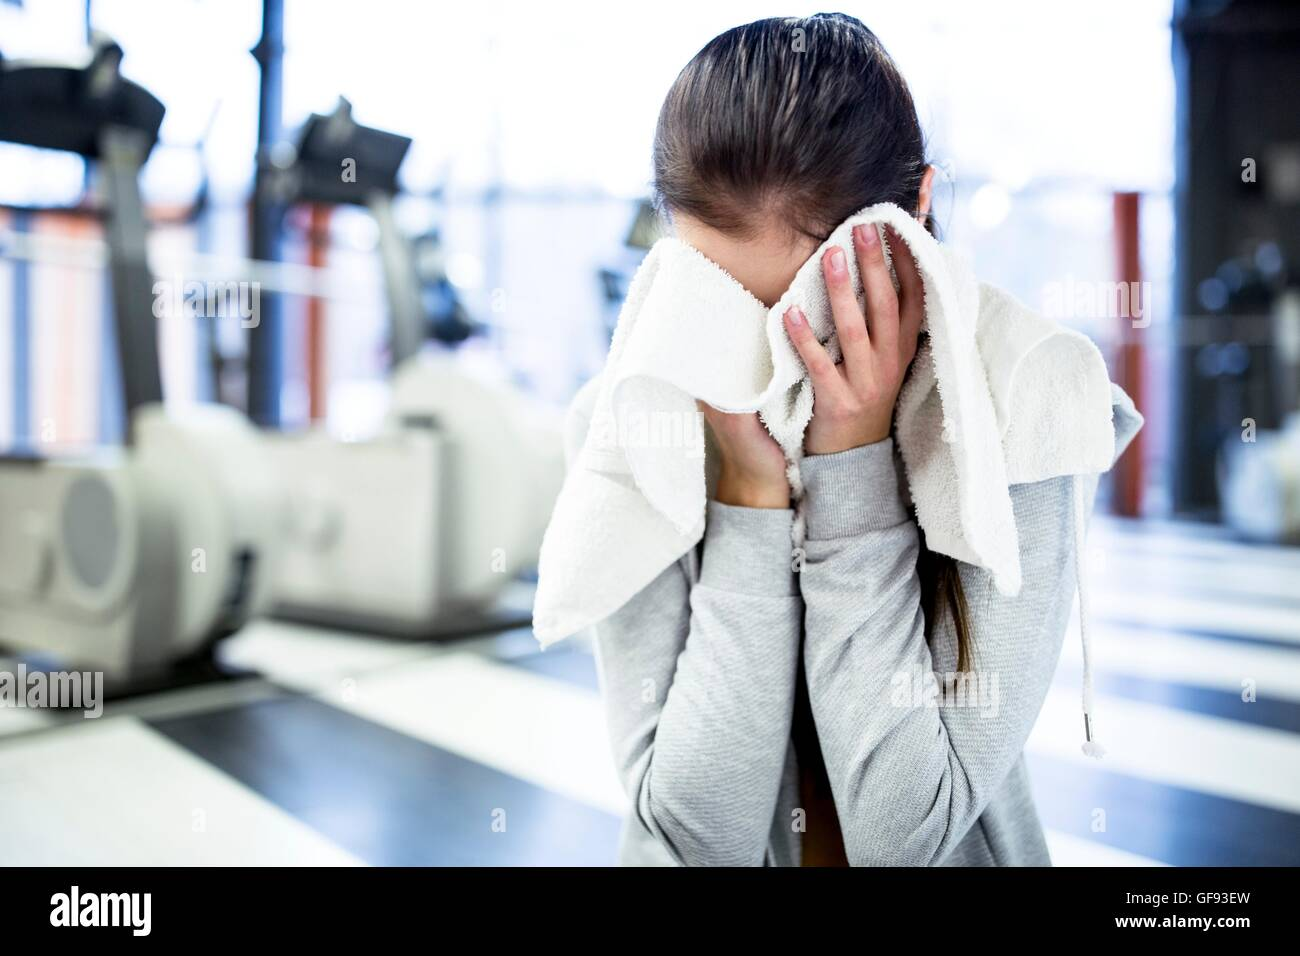 PROPERTY RELEASED. MODEL RELEASED. Cute young woman wiping her sweat after workout in gym. - Stock Image